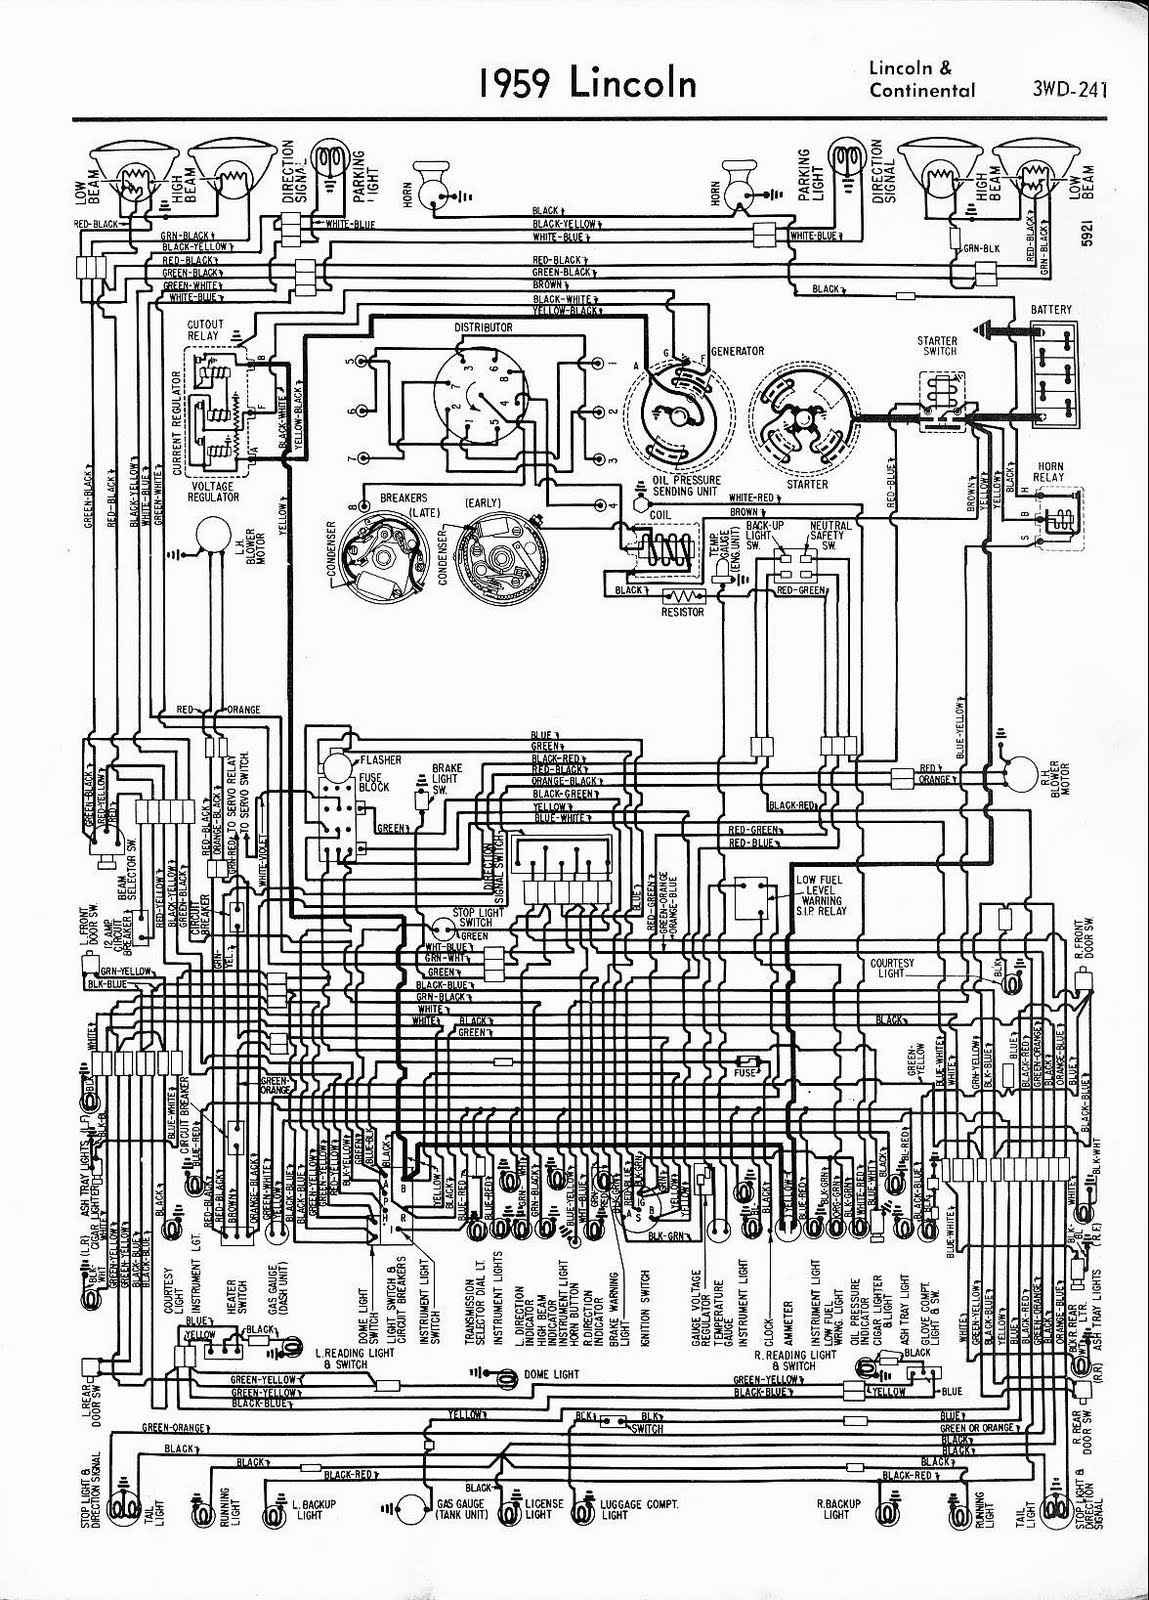 1998 continental 4 6 dohc schematic autos post 1996 lincoln continental engine diagram 2001 lincoln continental [ 1149 x 1600 Pixel ]